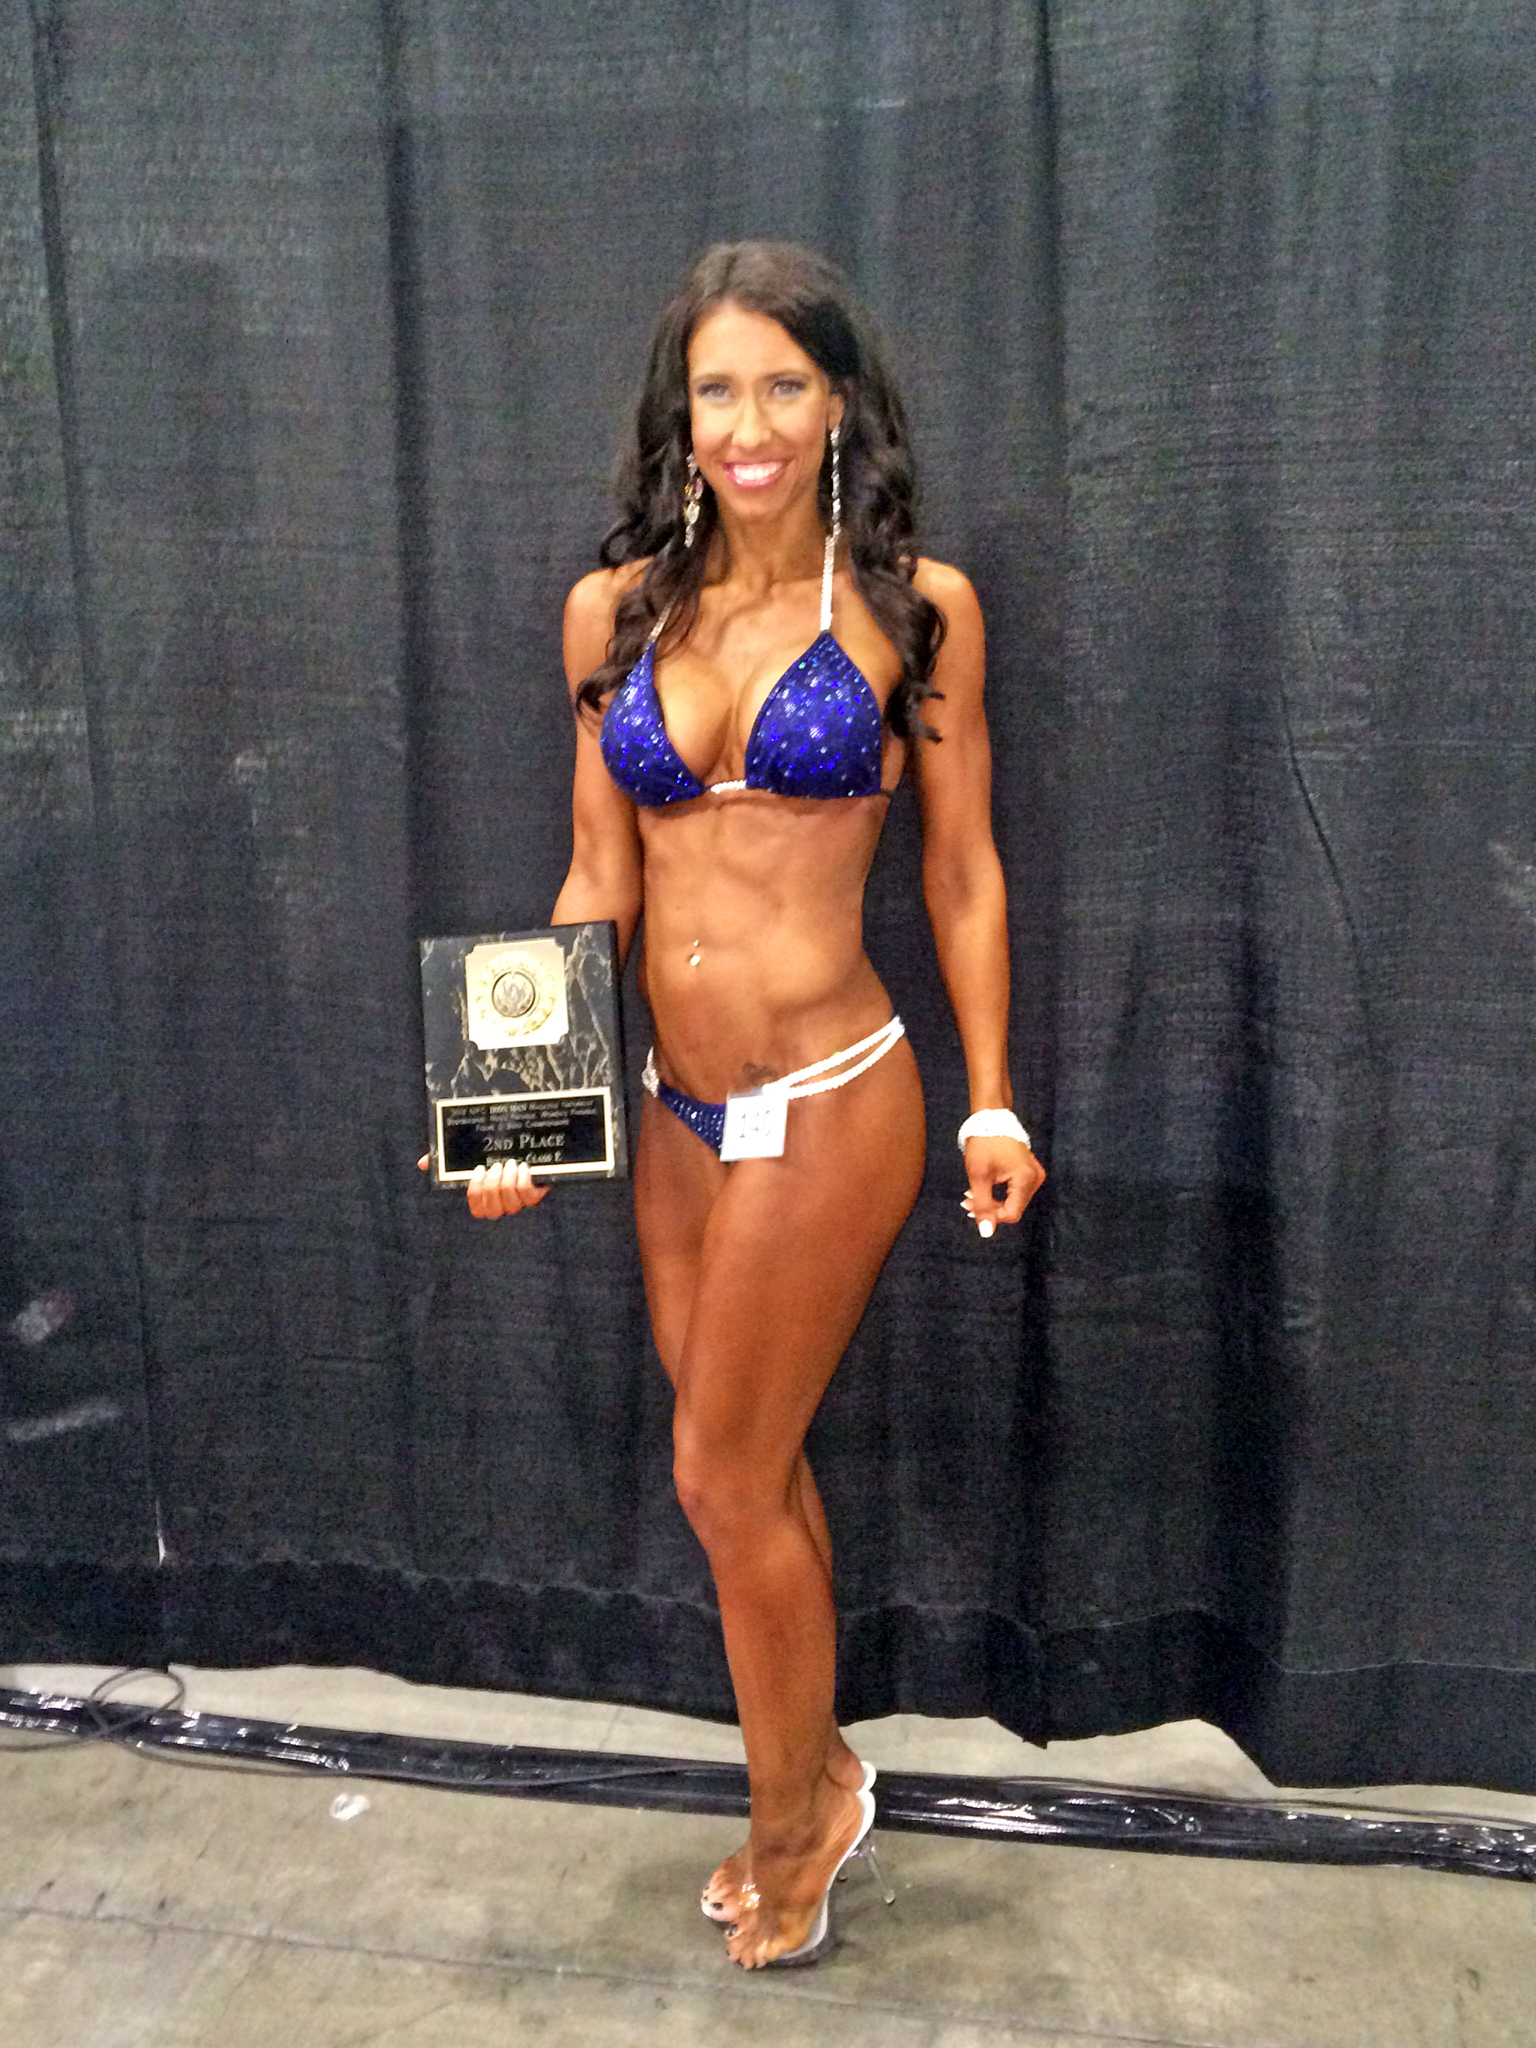 alafitness Hollywood personal trainer Los Angeles NPC bikini competition coach spray tan